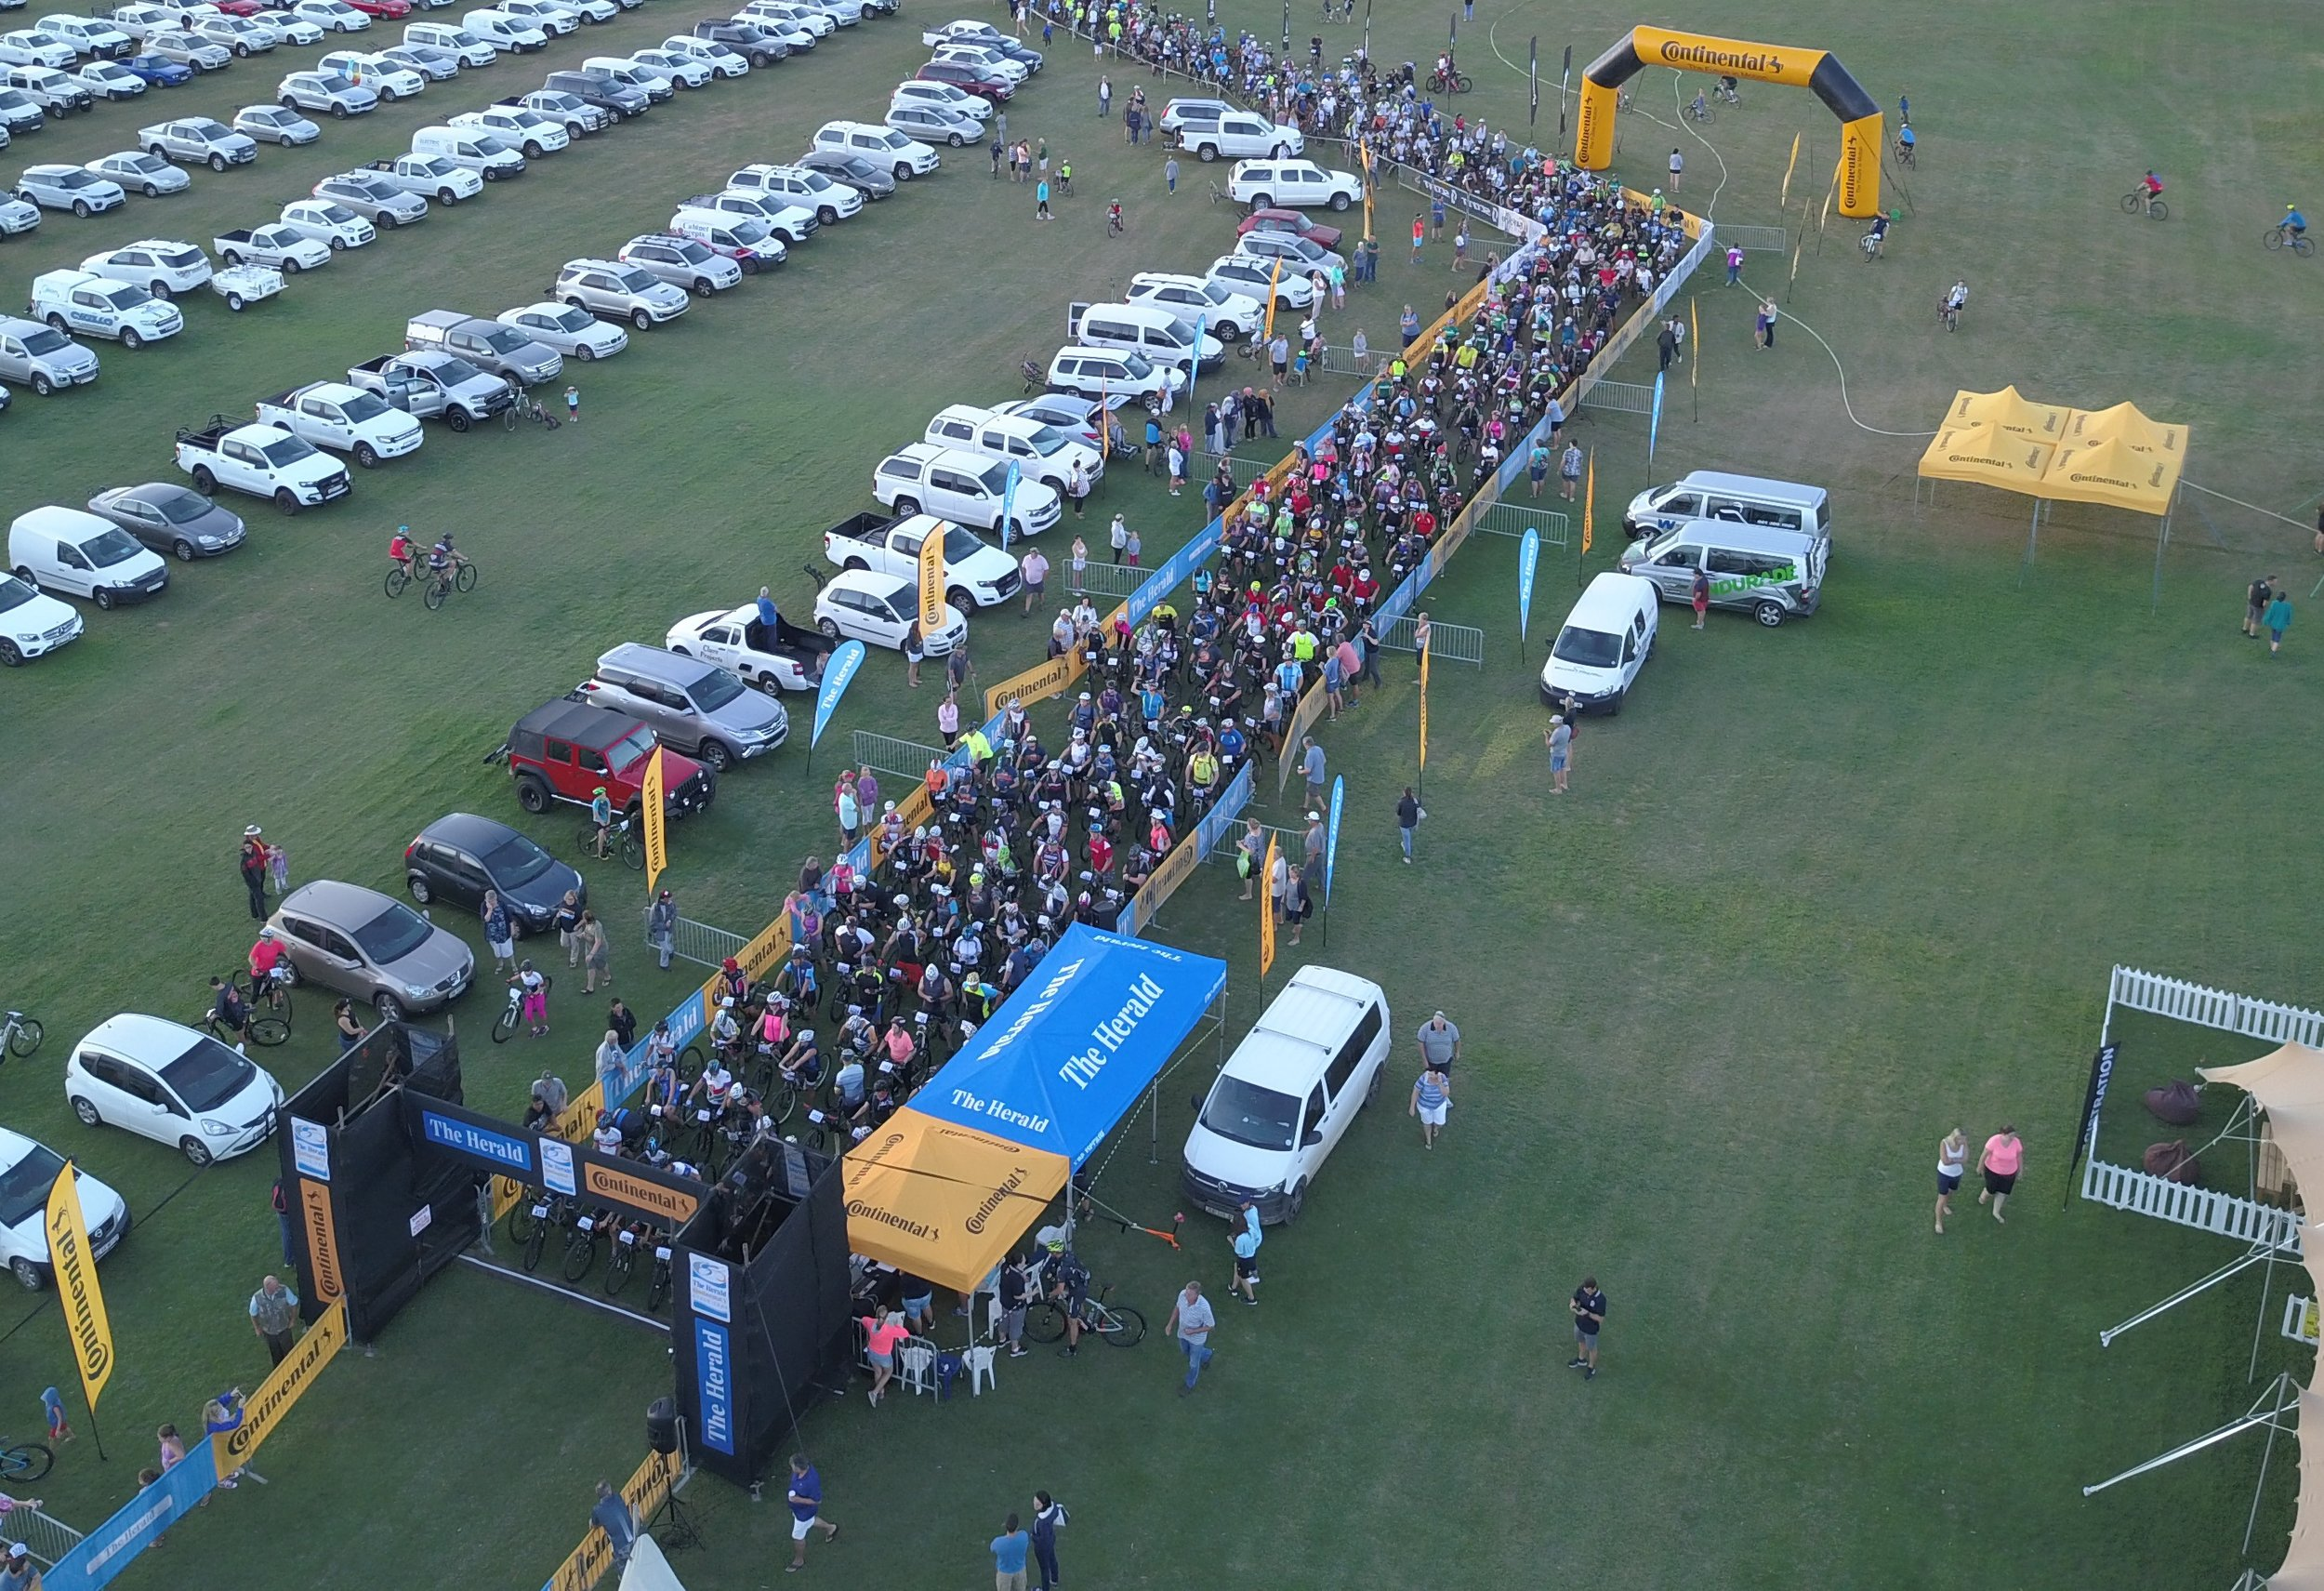 PARK & RIDE: Cyclists can once again look forward to first-class rider and spectator experience at next year's Herald Continental MTB race, to be hosed at the Addo Polo Club.